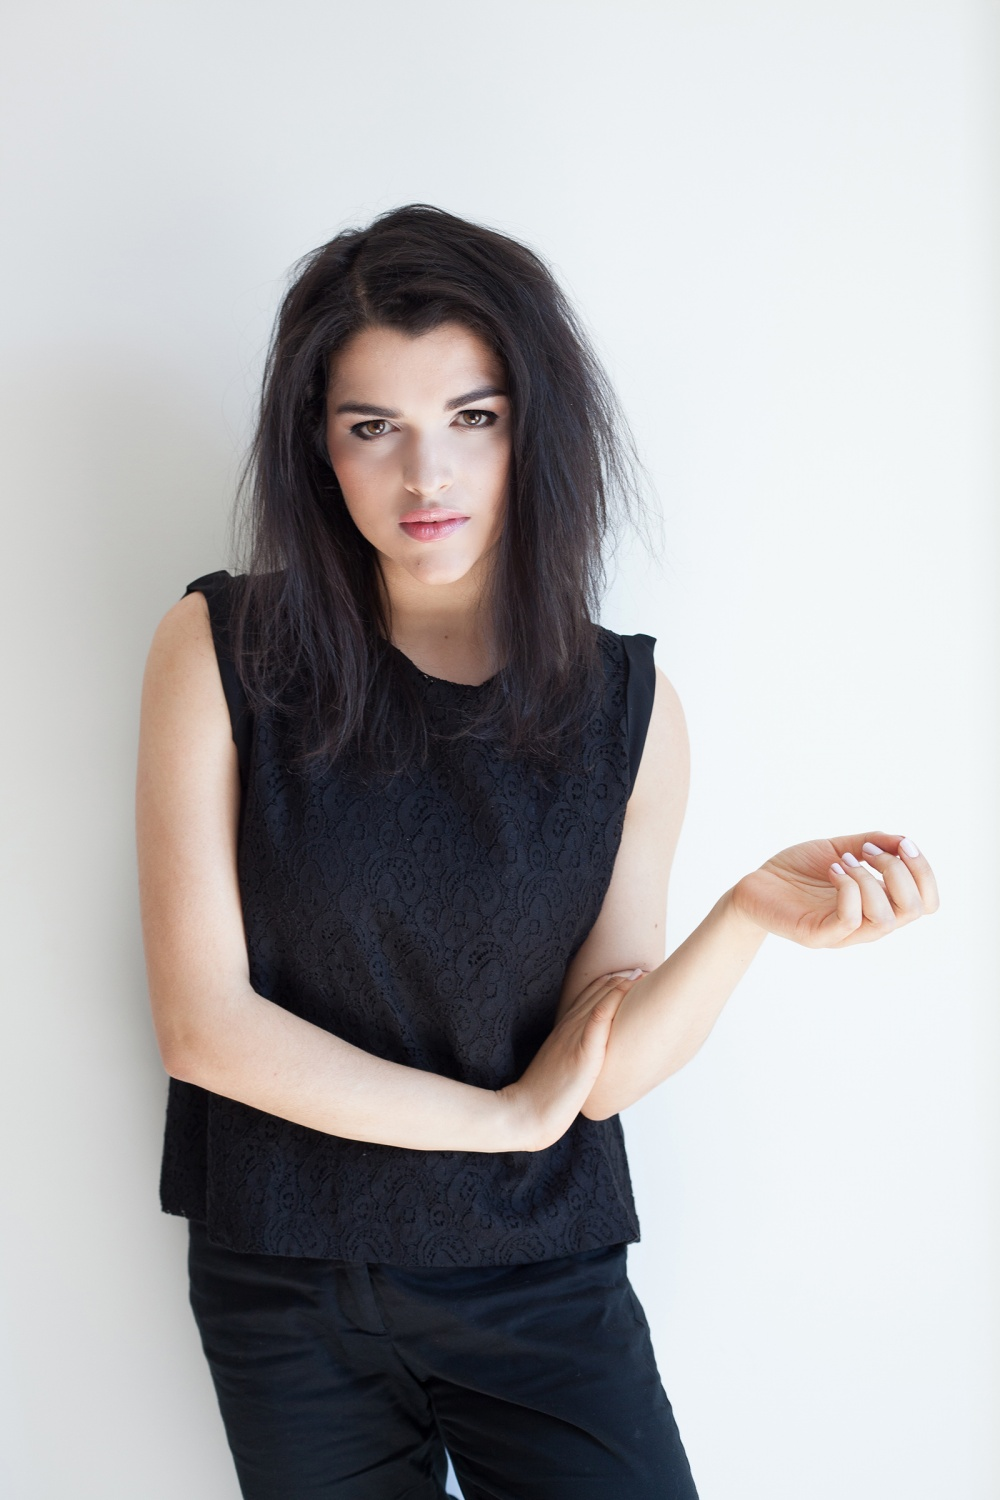 eve harlow nudography